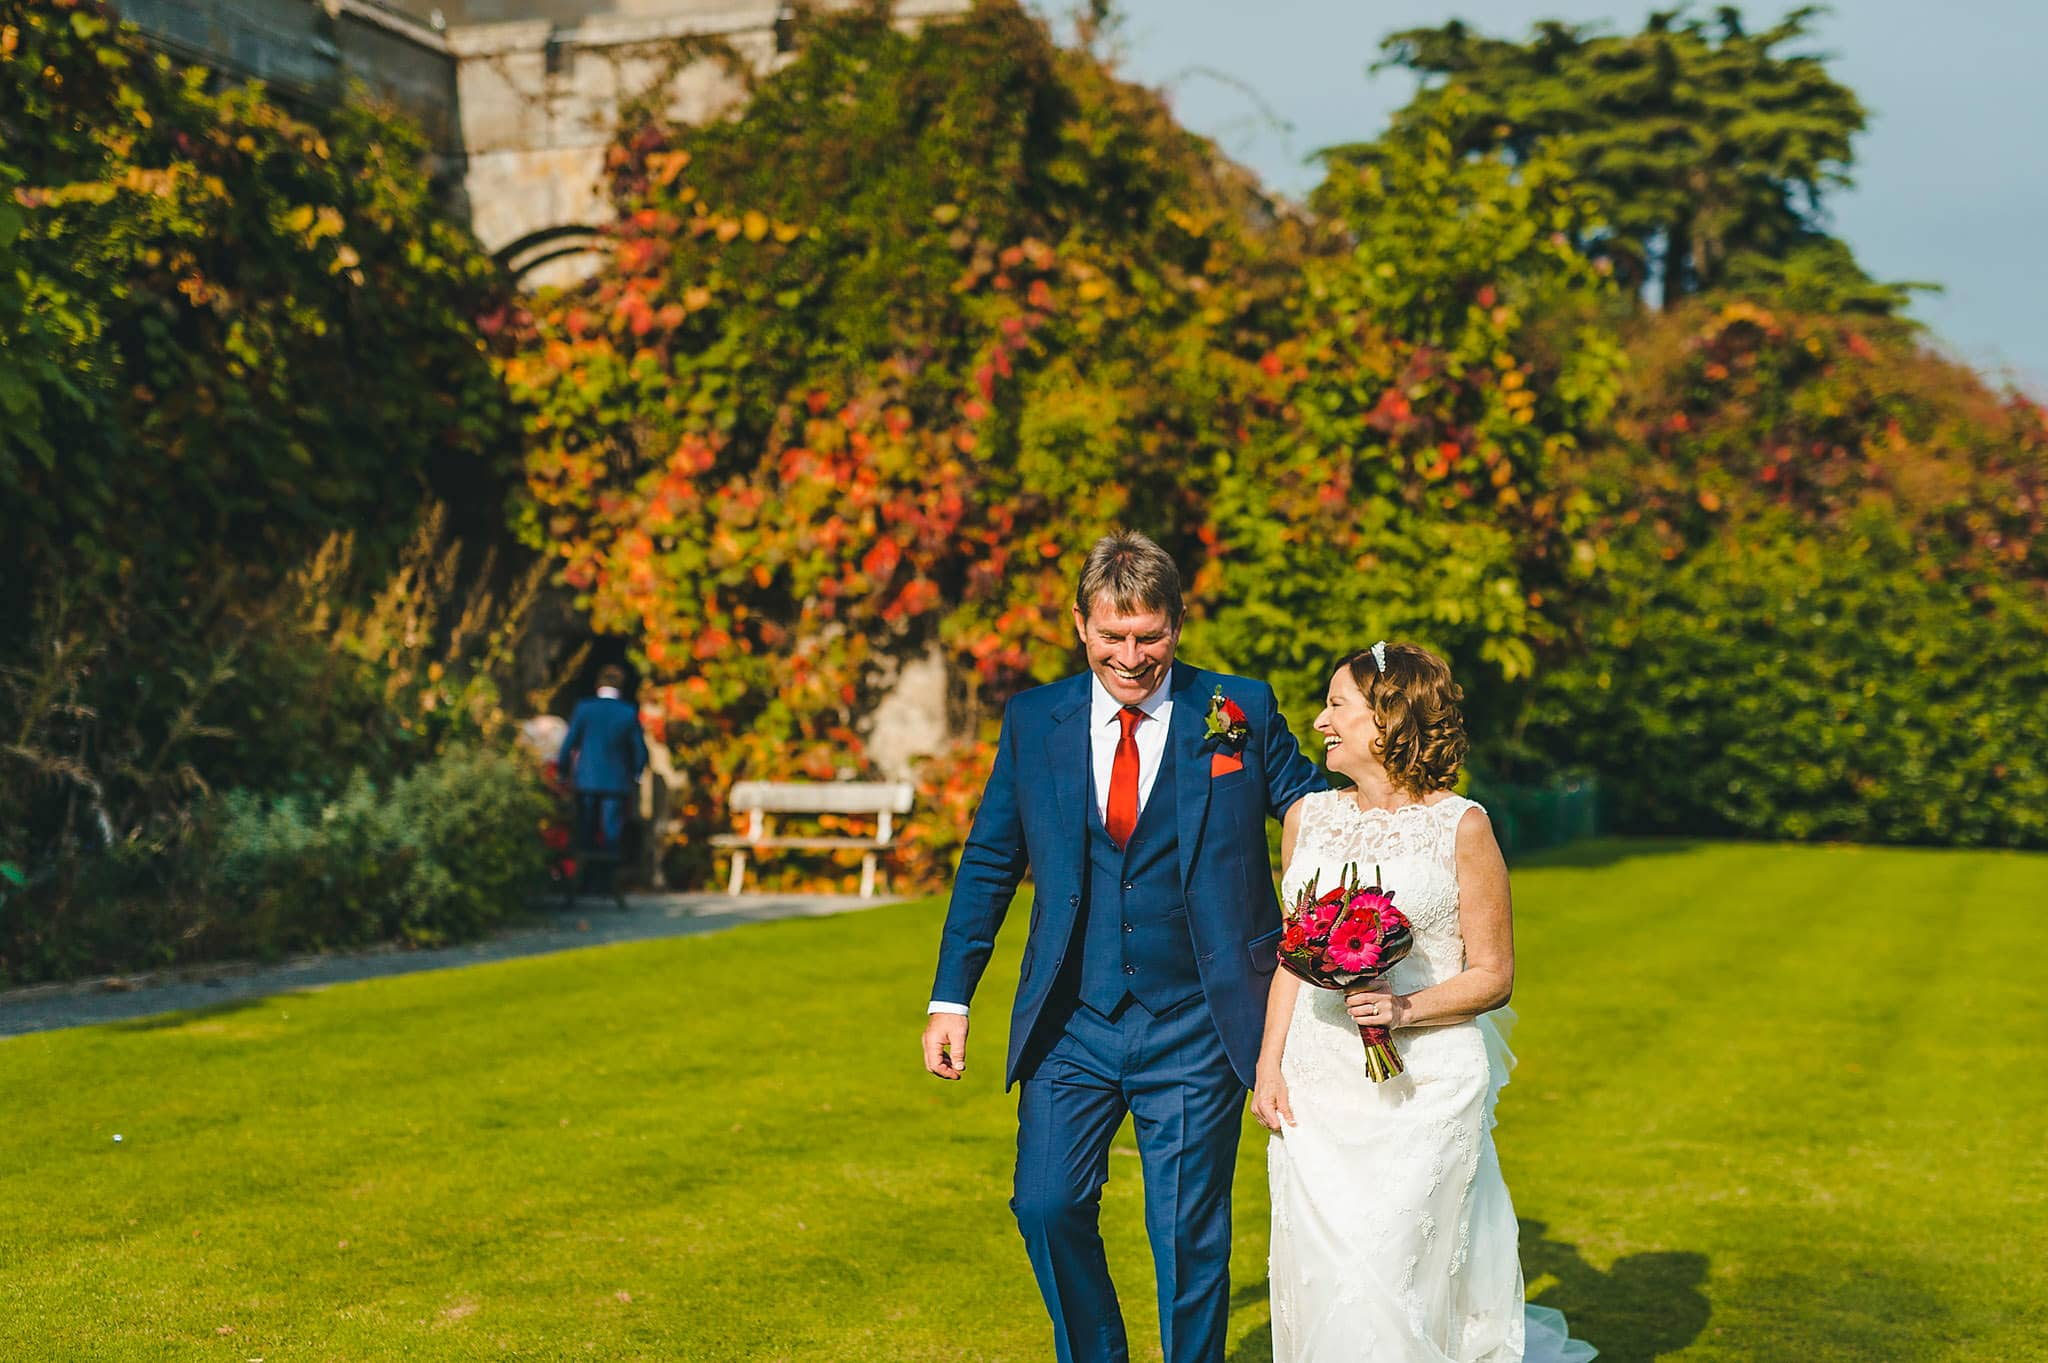 wedding-photography-at-eastnor-castle-in-herefordshire (89)